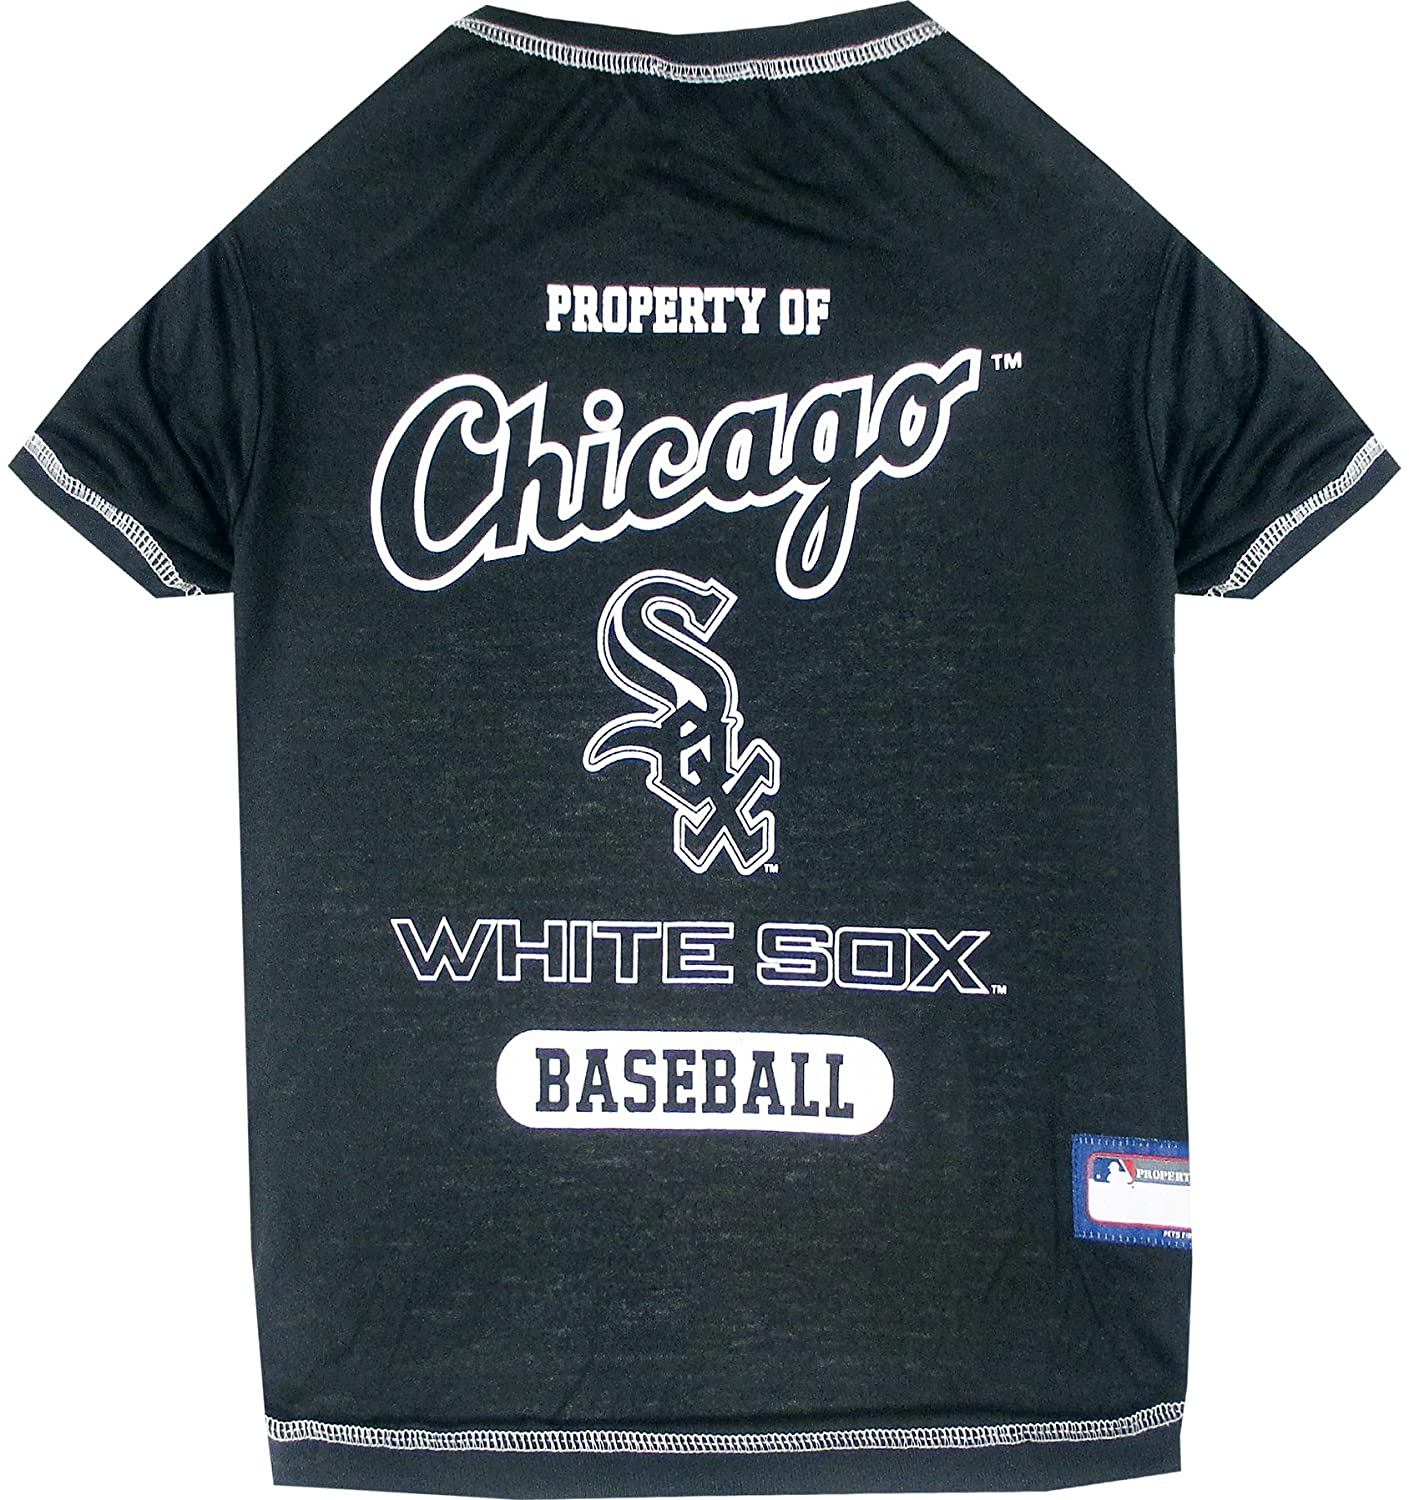 123d306e6 Licensed Baseball Jerseys, T-Shirts, Dugout Jackets, CAMO Jerseys, Hoodie  Tee's & Pink Jerseys for Dogs & Cats Available in All 30 MLB Teams & 7  Sizes.